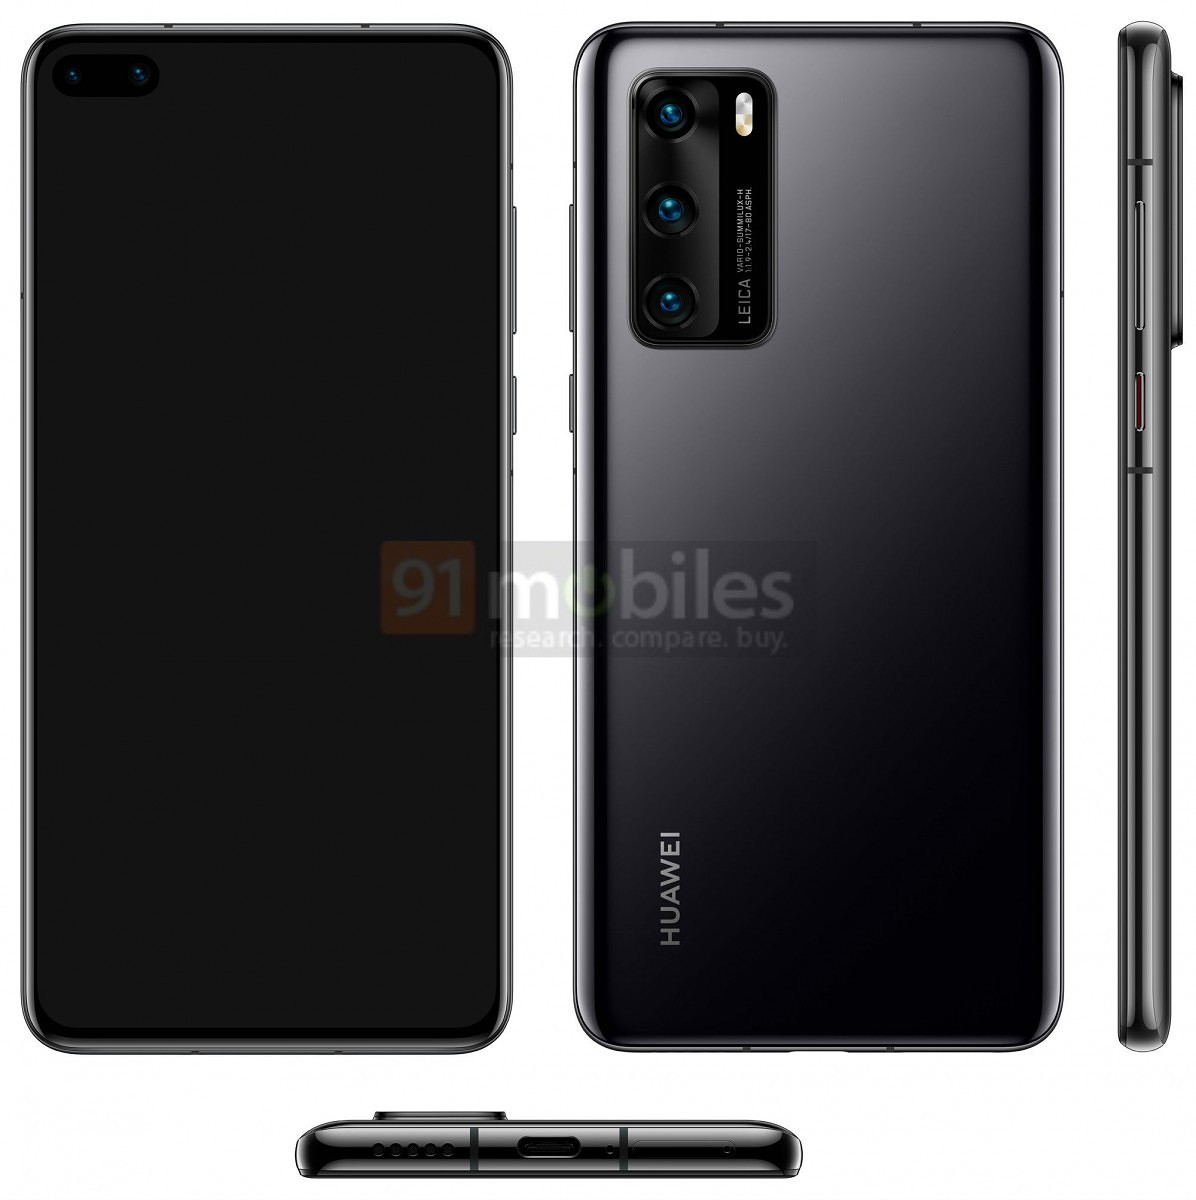 Huawei P40 smartphone to feature a dual punch camera, triple rear camera, suggests leaked render 1